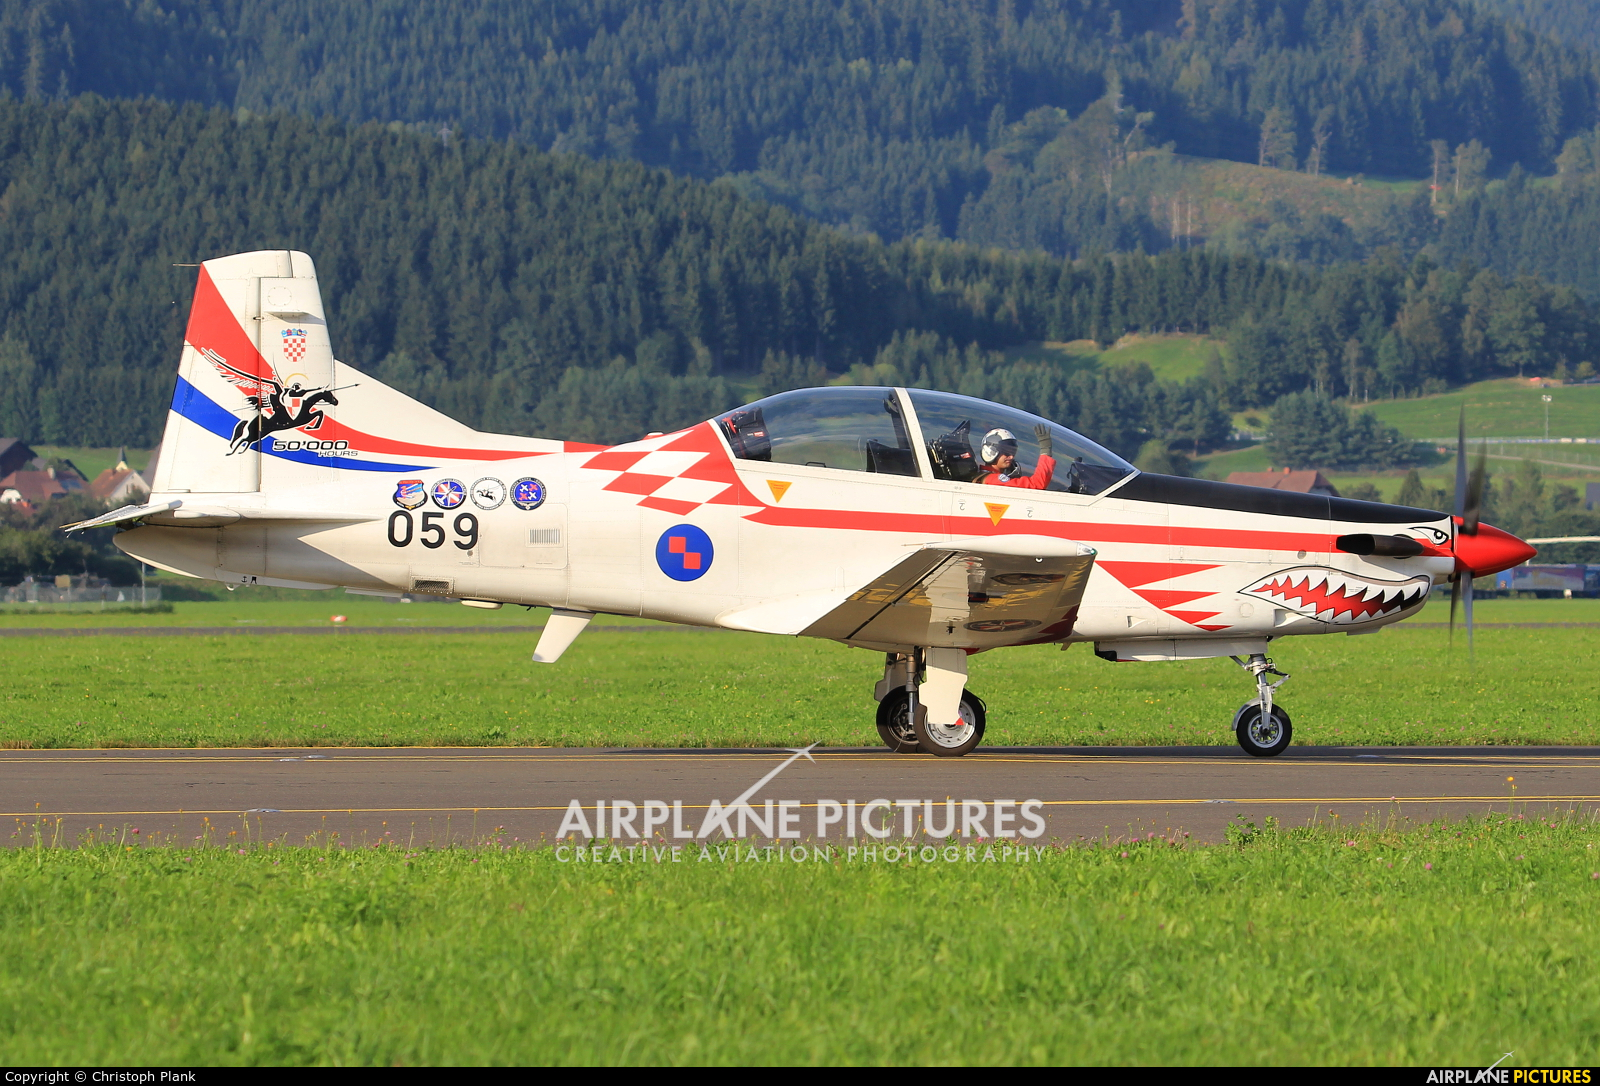 Croatia - Air Force 059 aircraft at Zeltweg